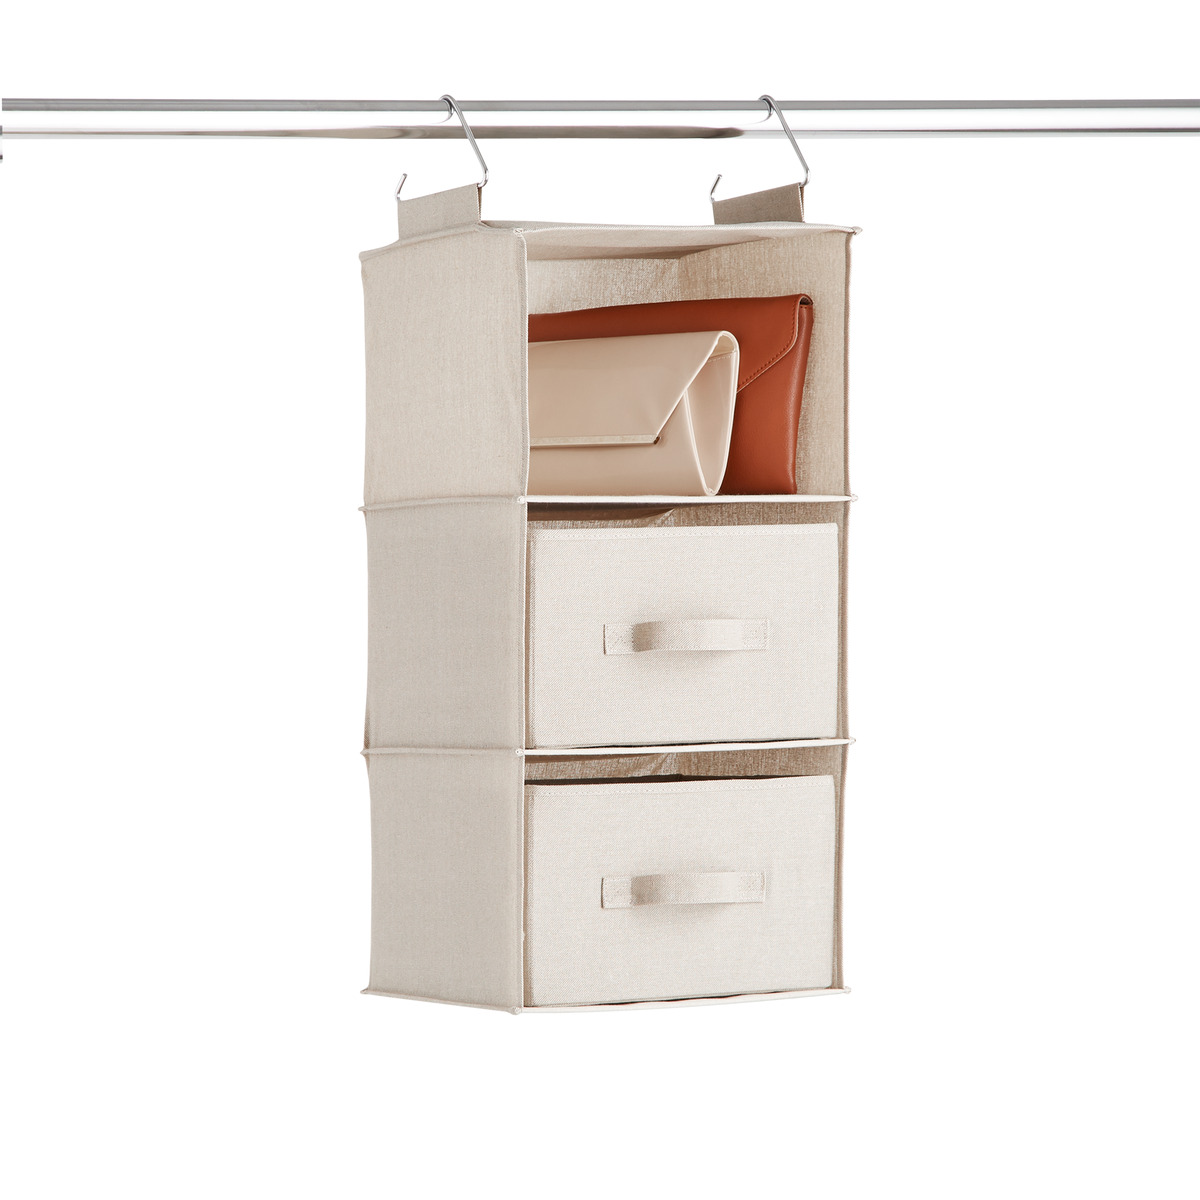 Taupe 3-Compartment Hanging Sweater Organizer